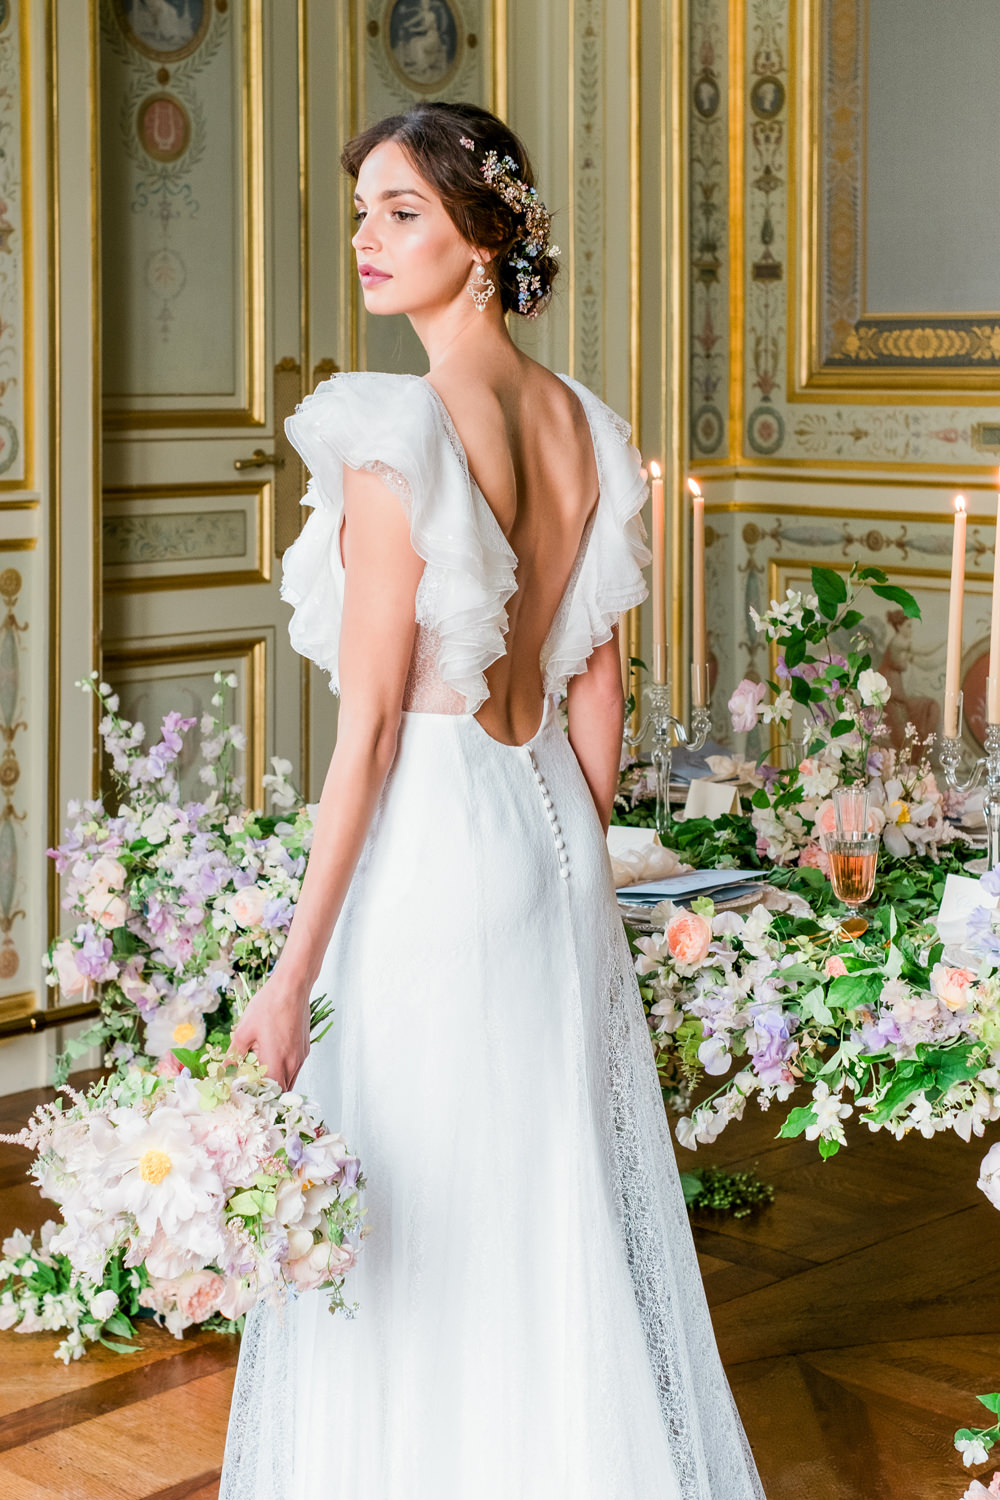 Classy and Elegant Wedding Inspiration Bride Portrait in Paris at Greg Finck Workshop with Rime Arodaky Wedding Dress and tablescape by Joy Proctor